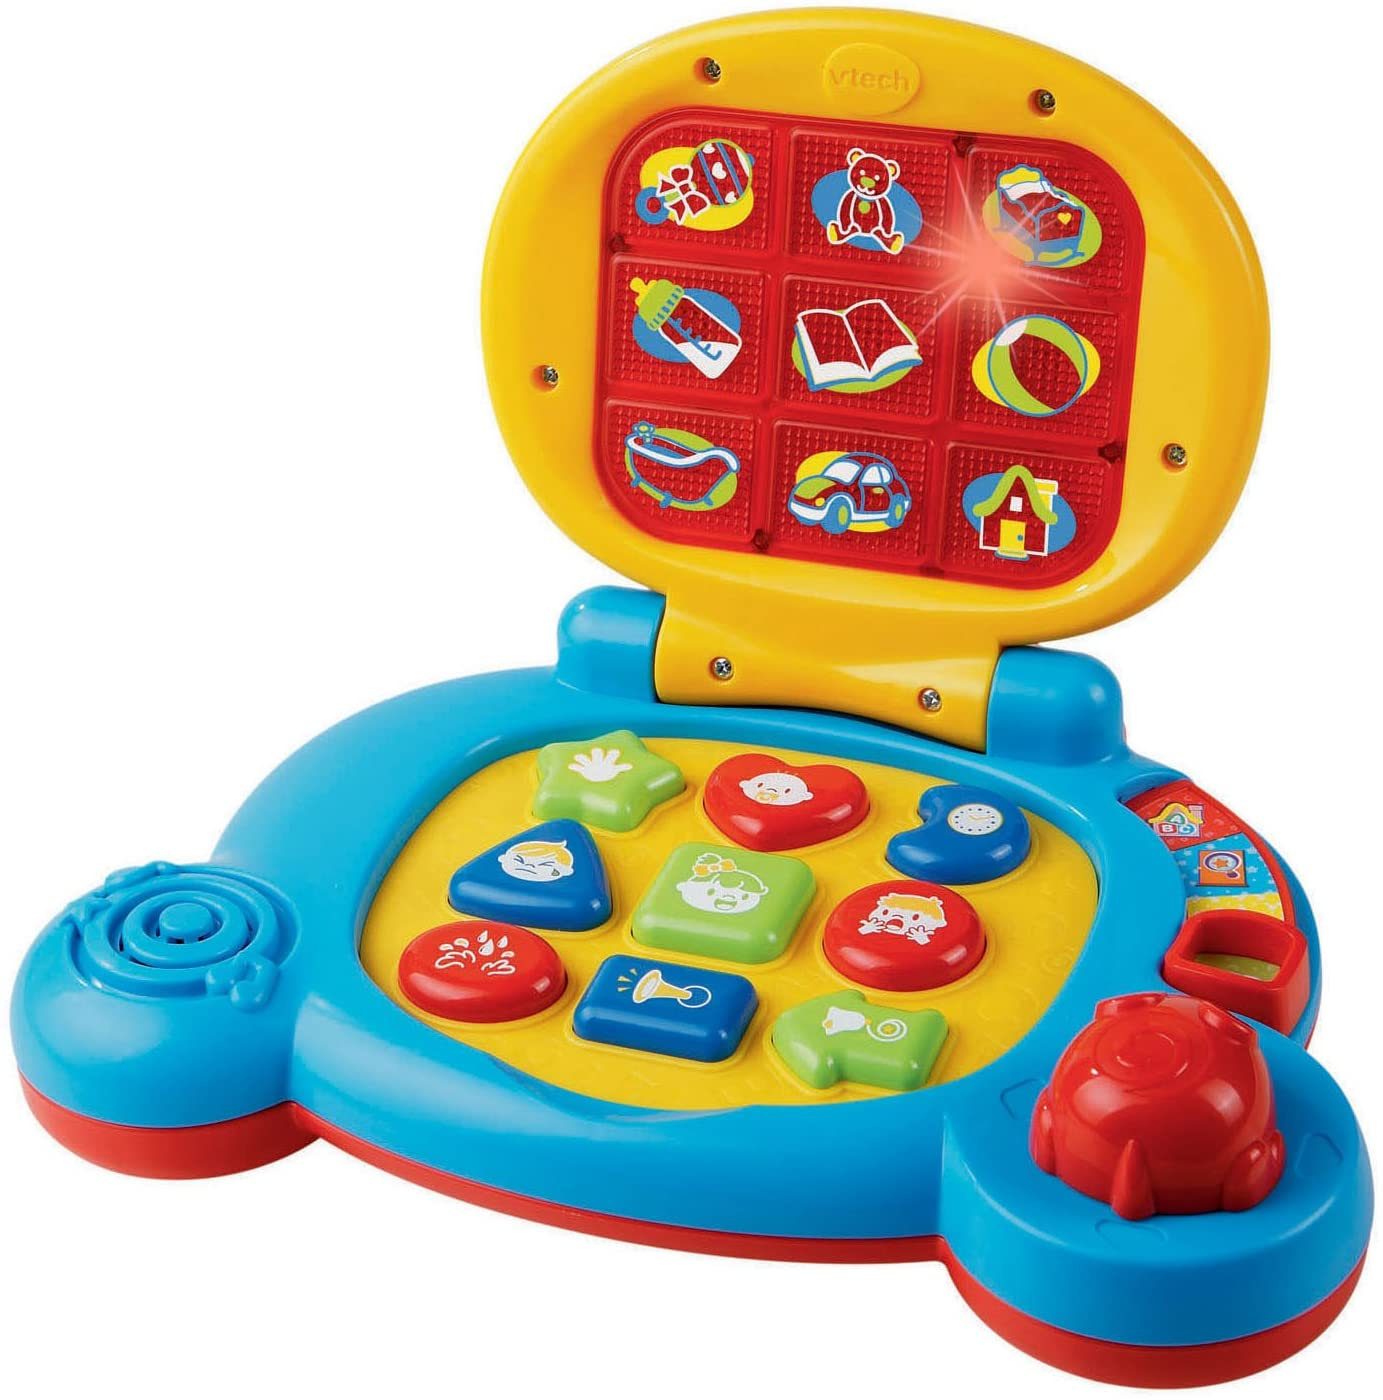 Amazon Com Vtech Baby S Learning Laptop Toy Frustration Free Packaging Blue Toys Games